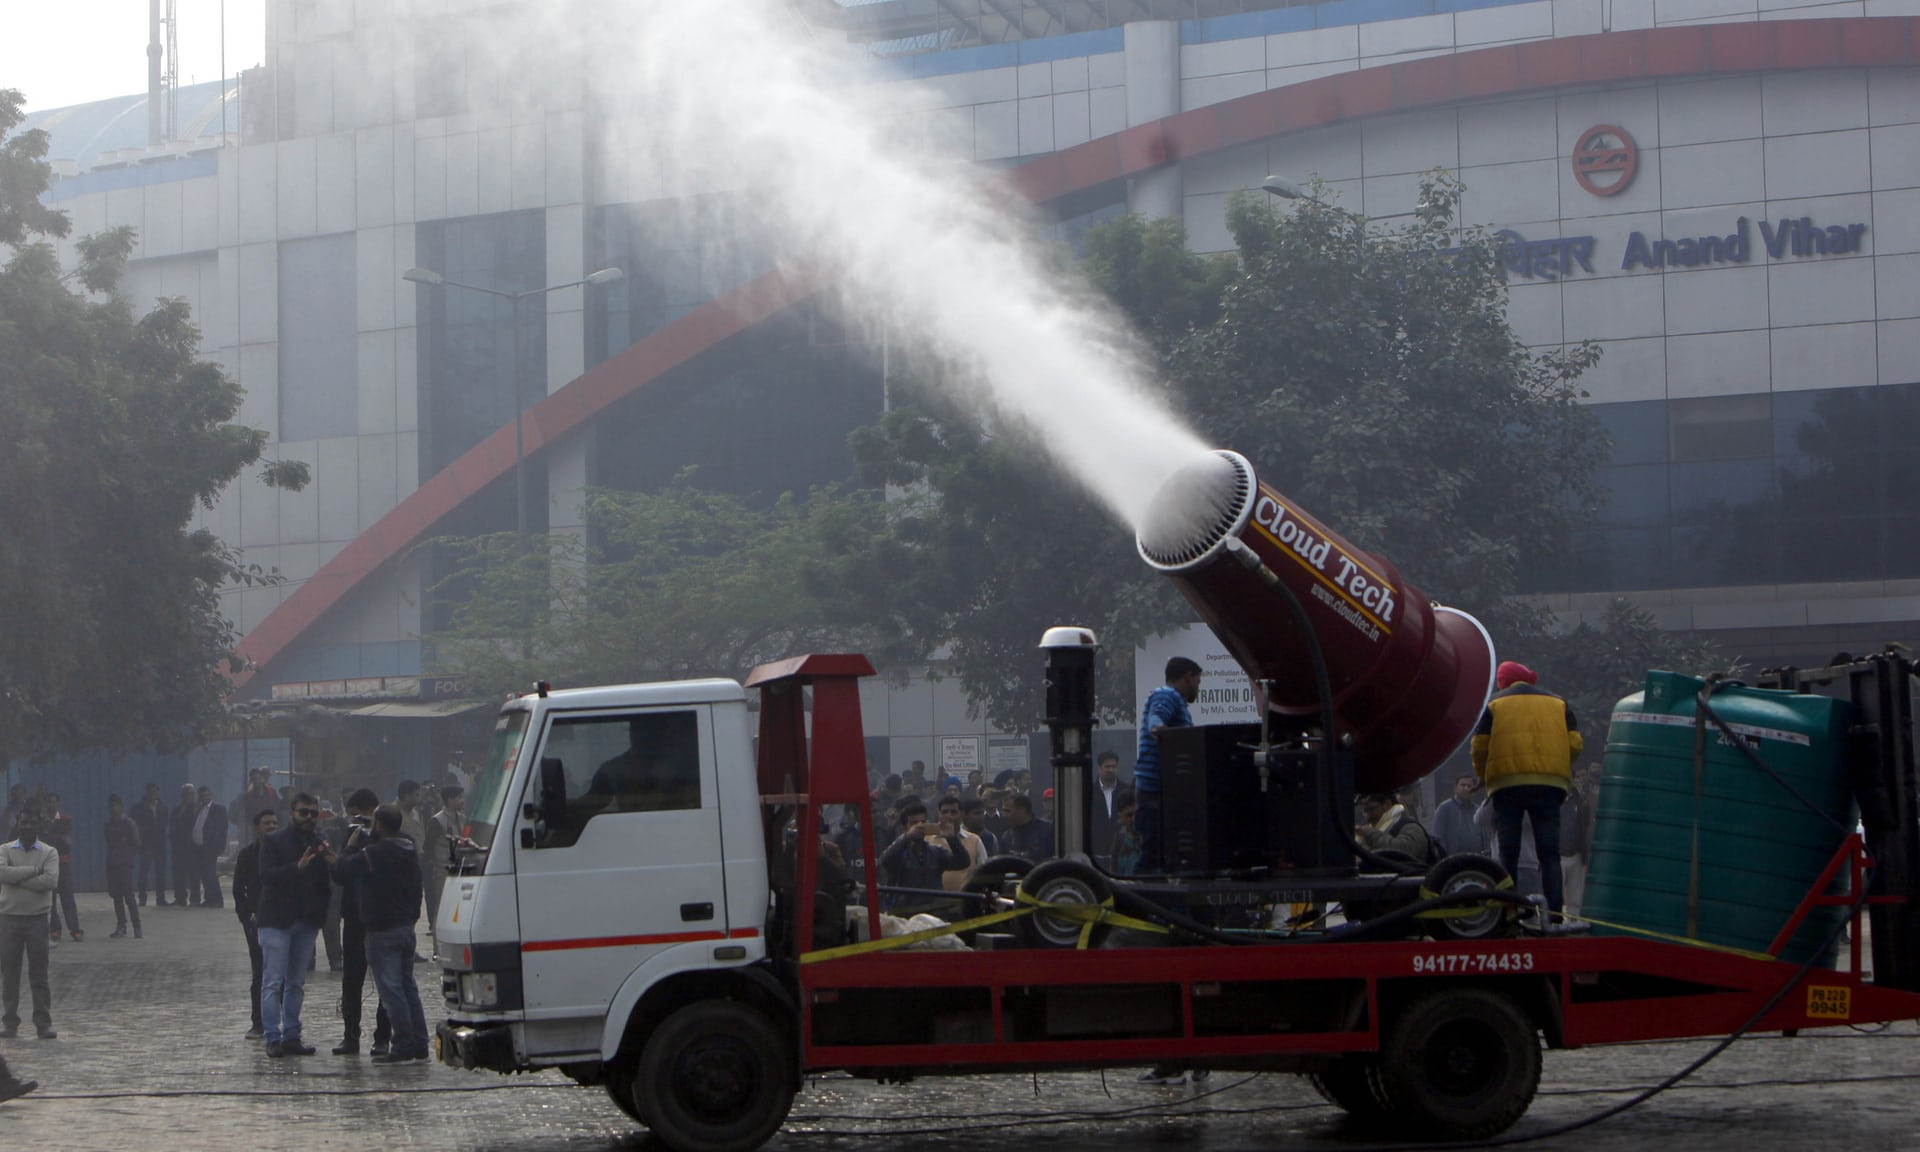 India has launched a new cannon to combat air pollution that rapidly shoots out water droplets intended to flush pollutants out of the air.